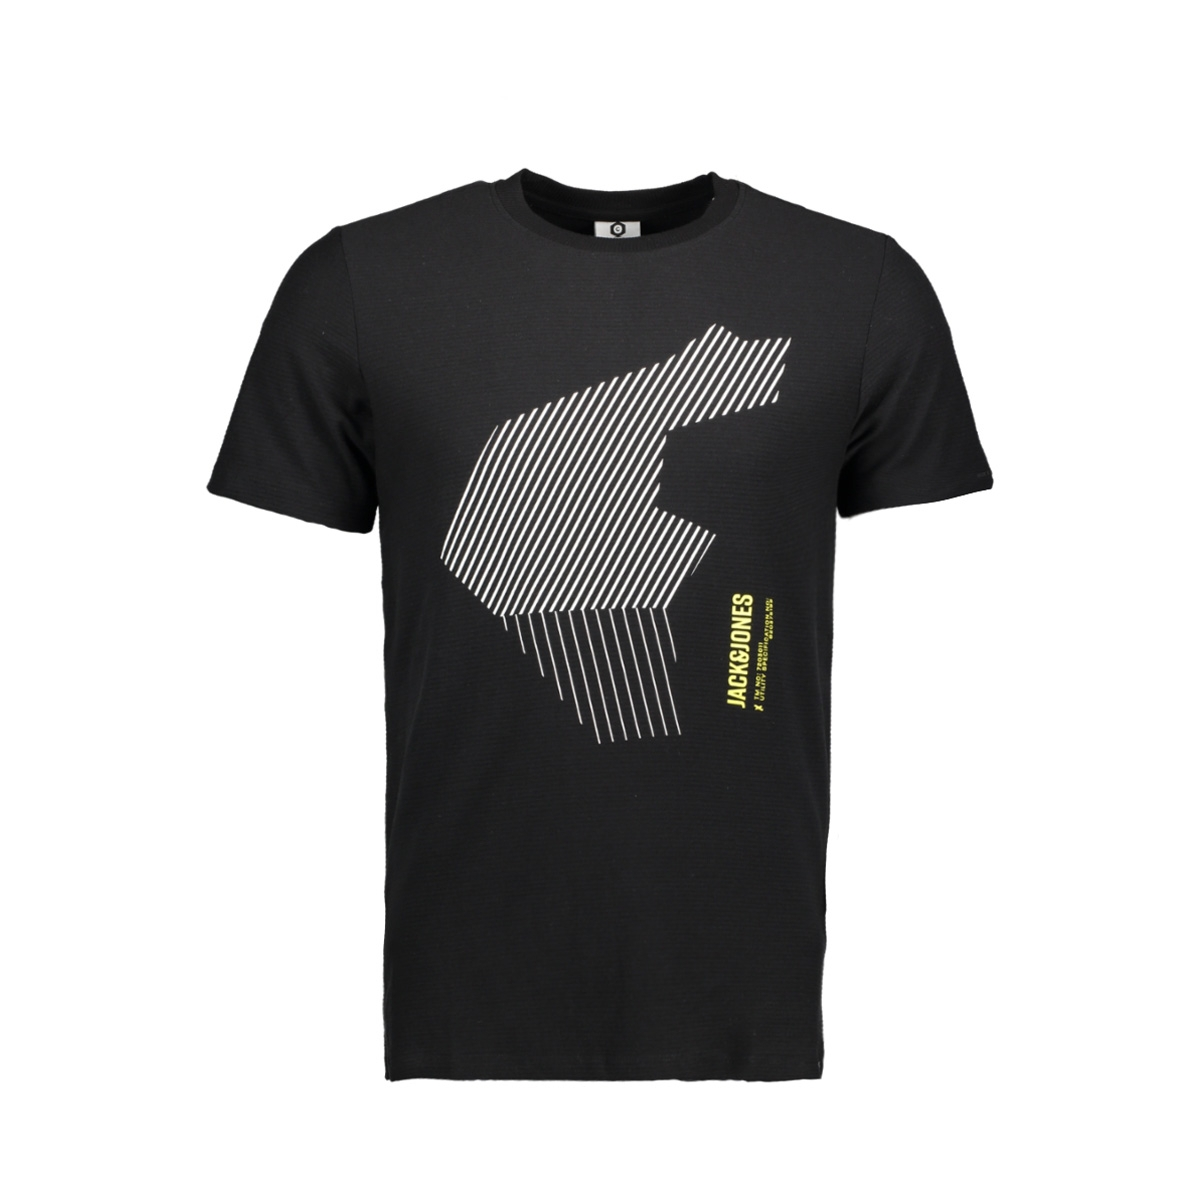 jconine tee ss 12137031 jack & jones t-shirt black